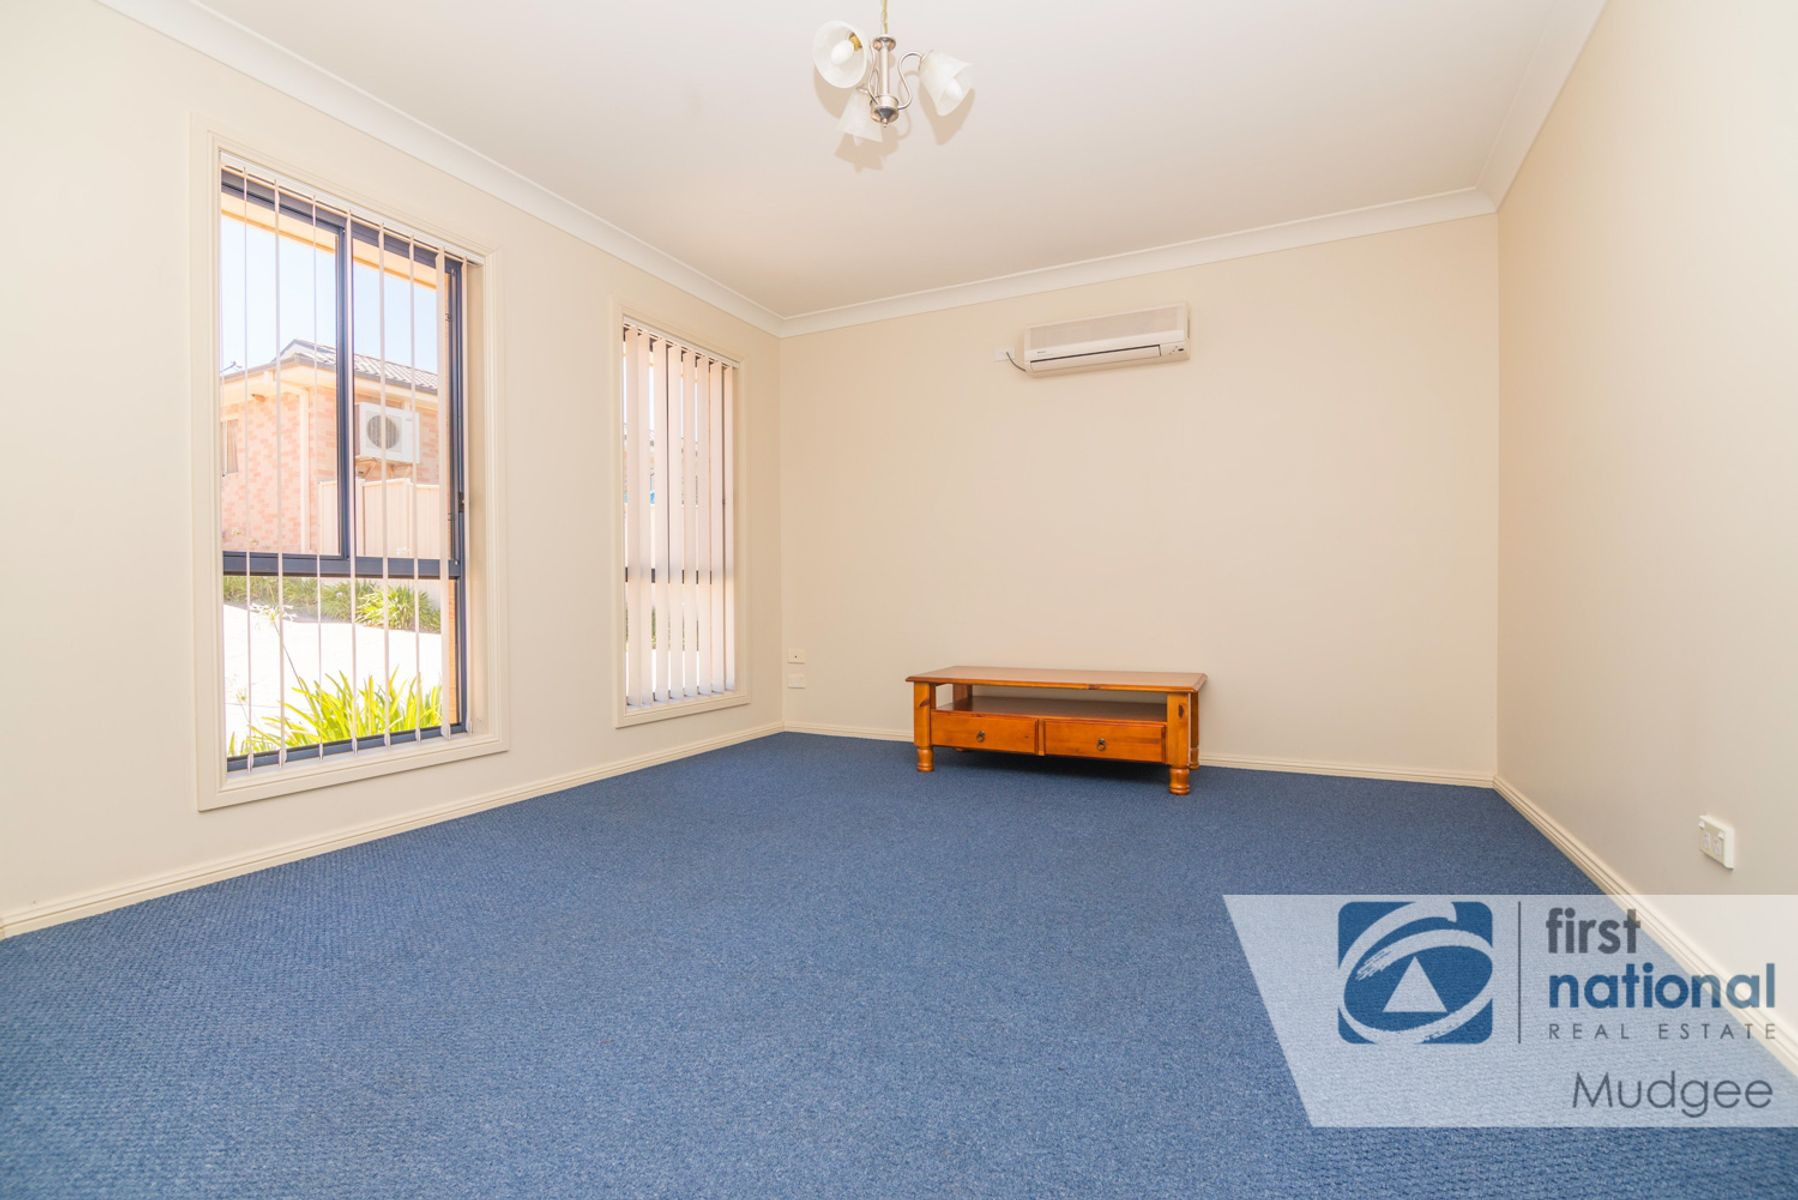 3/7 Robert Jones Street, Mudgee, NSW 2850